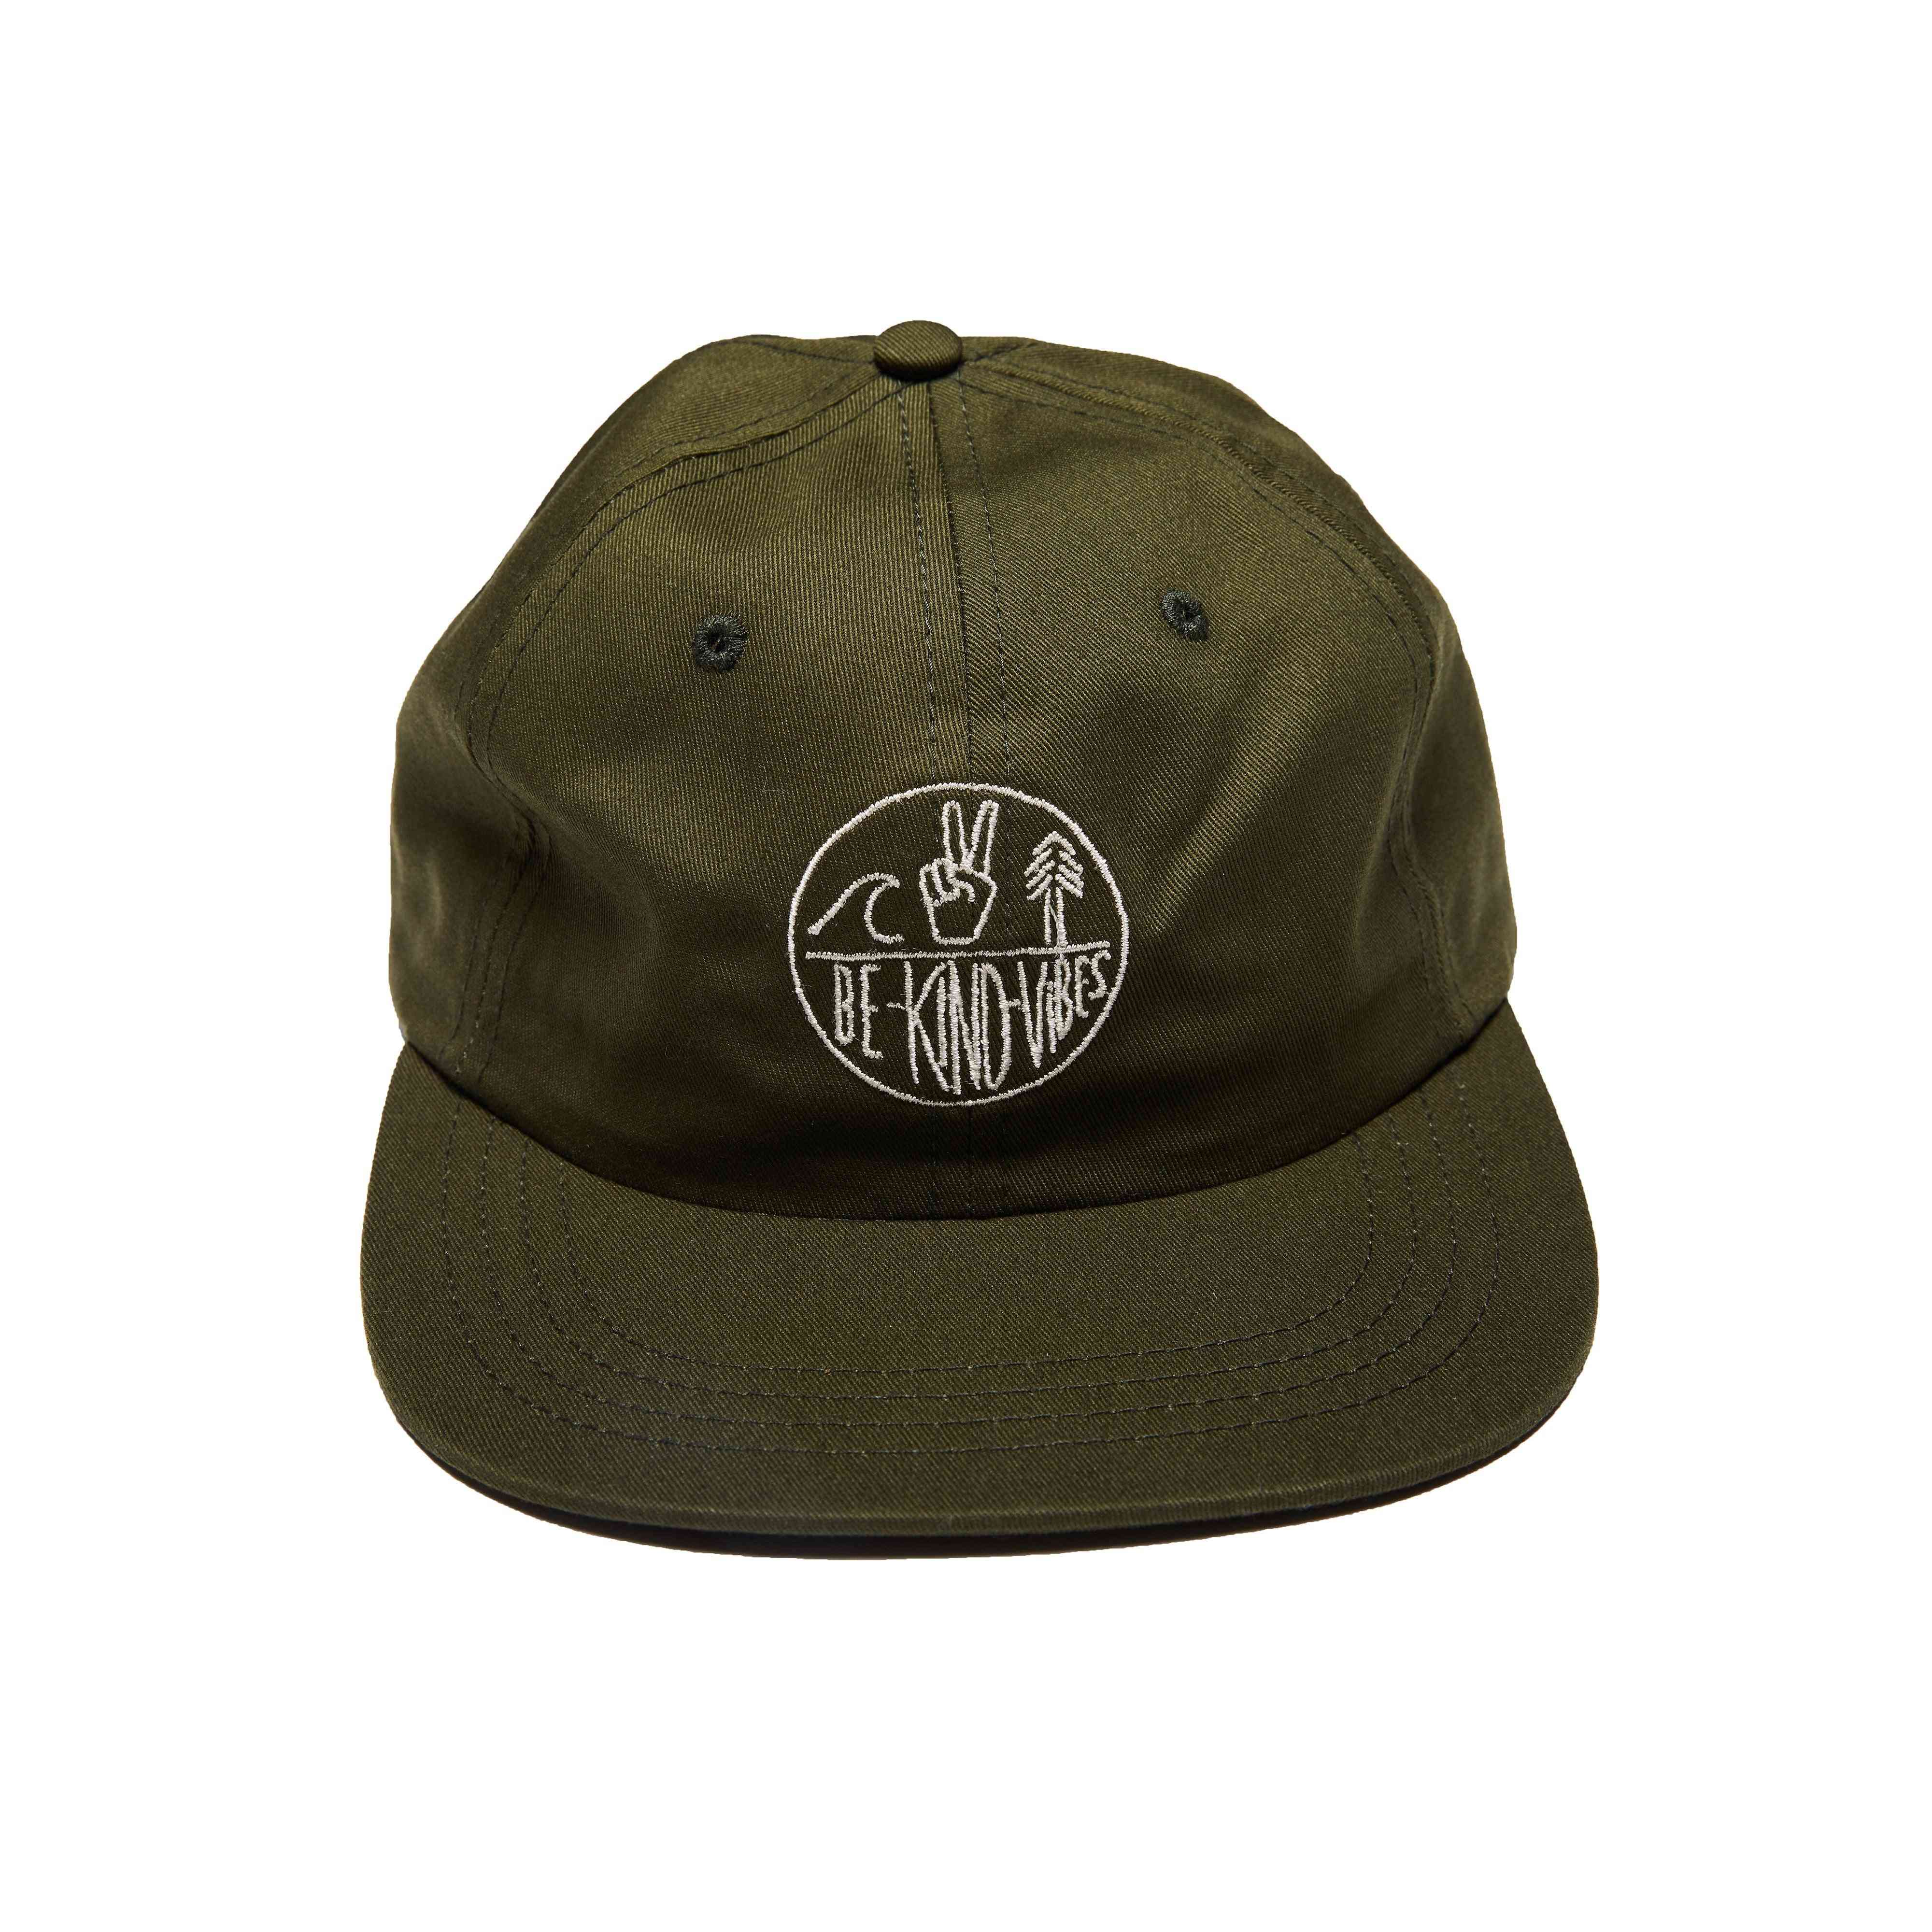 Soft Cotton Twill Camp Hat With Adjustable Back Strap